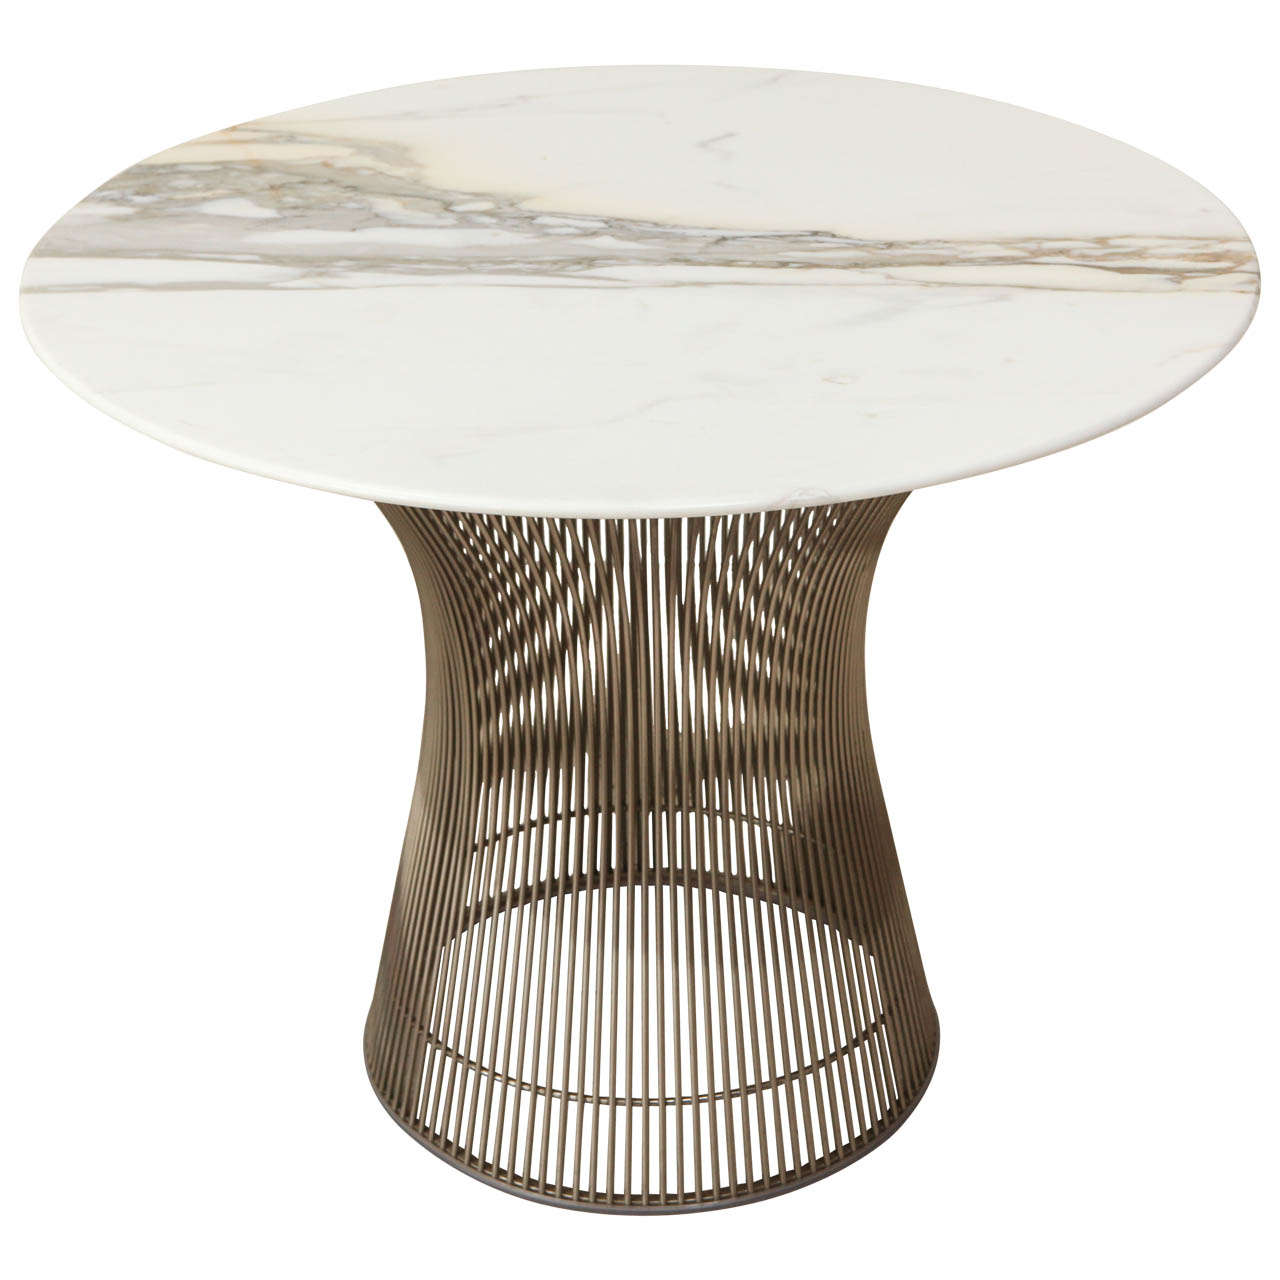 Marble top side table - Marble Top Side Table By Warren Platner For Knoll 1